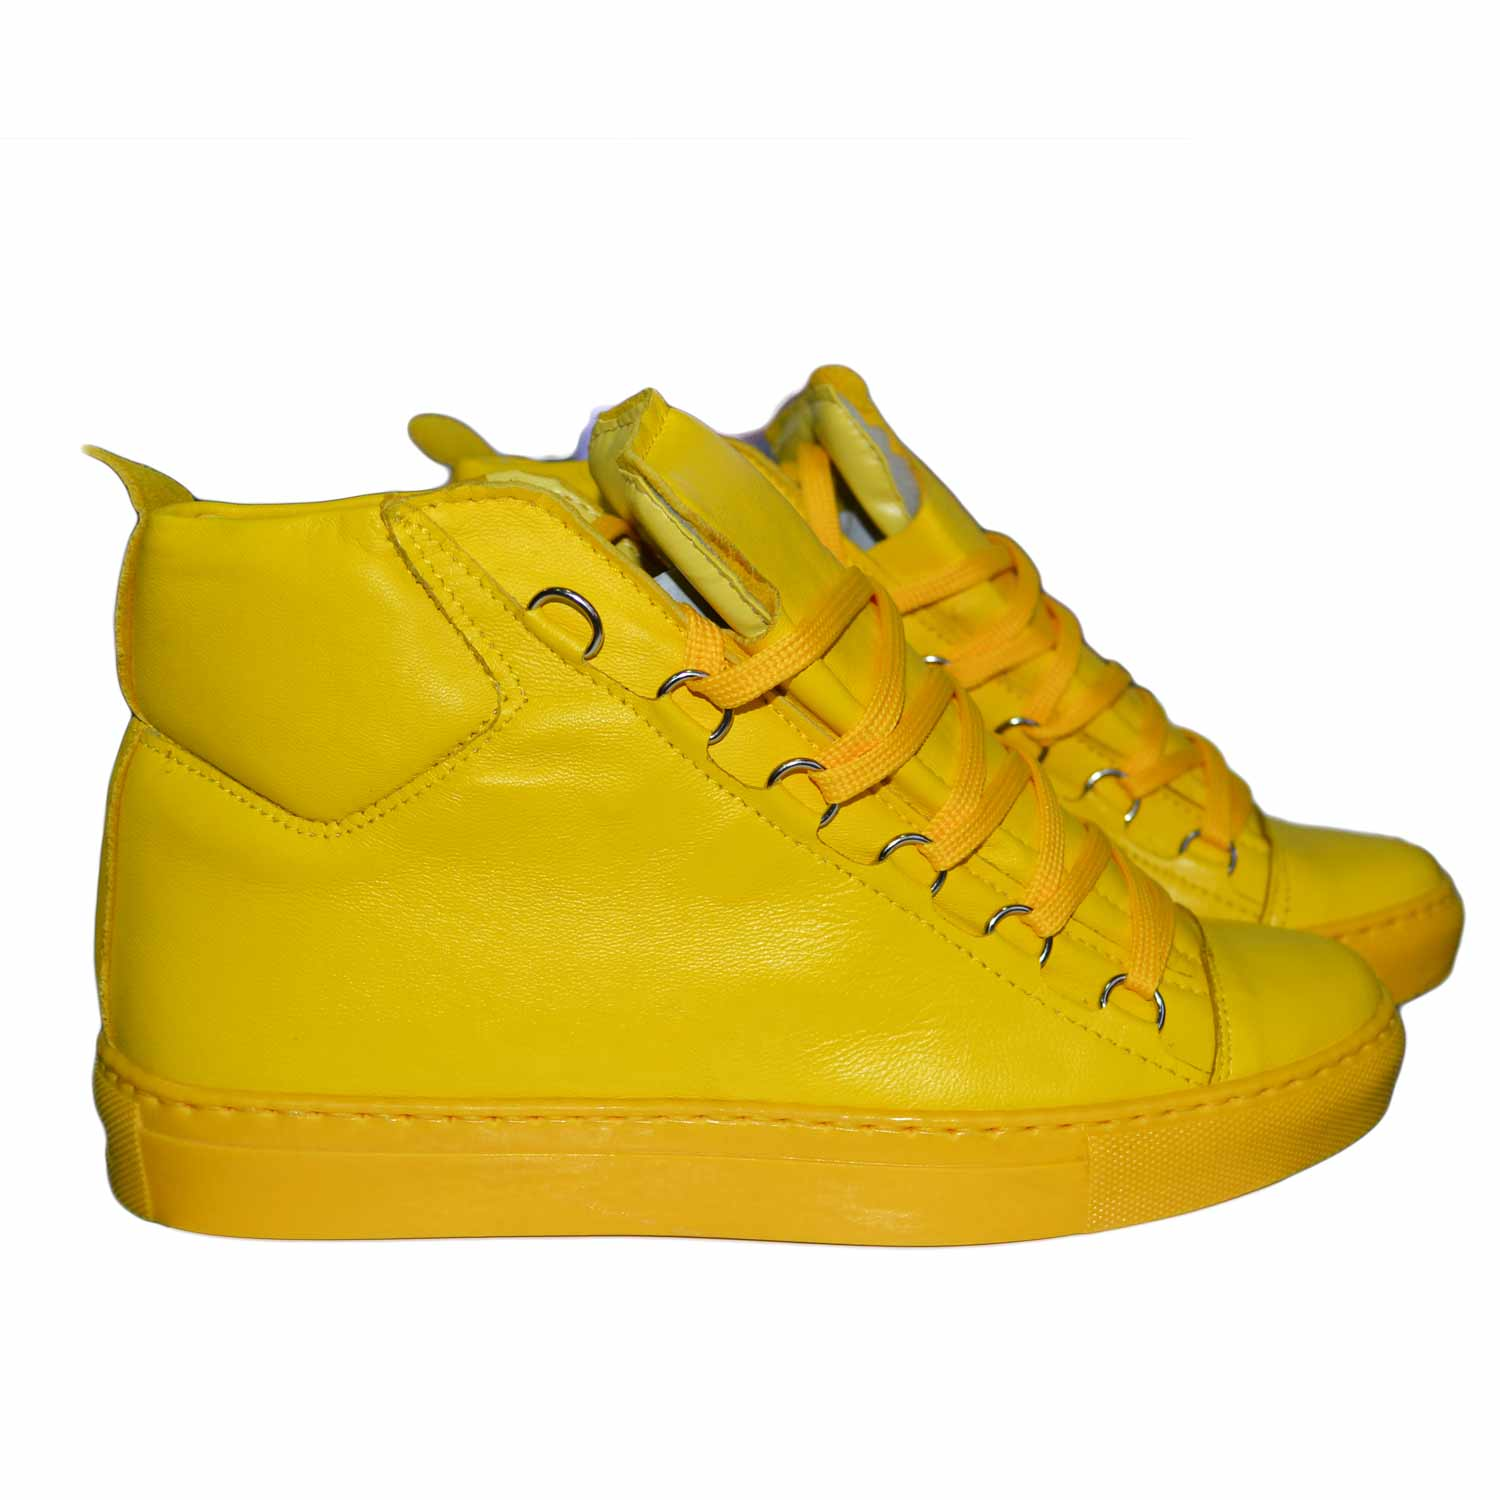 Sneakers alta balen uomo man stati uniti giallo uomo sneakers alta Made In Italy | MaluShoes